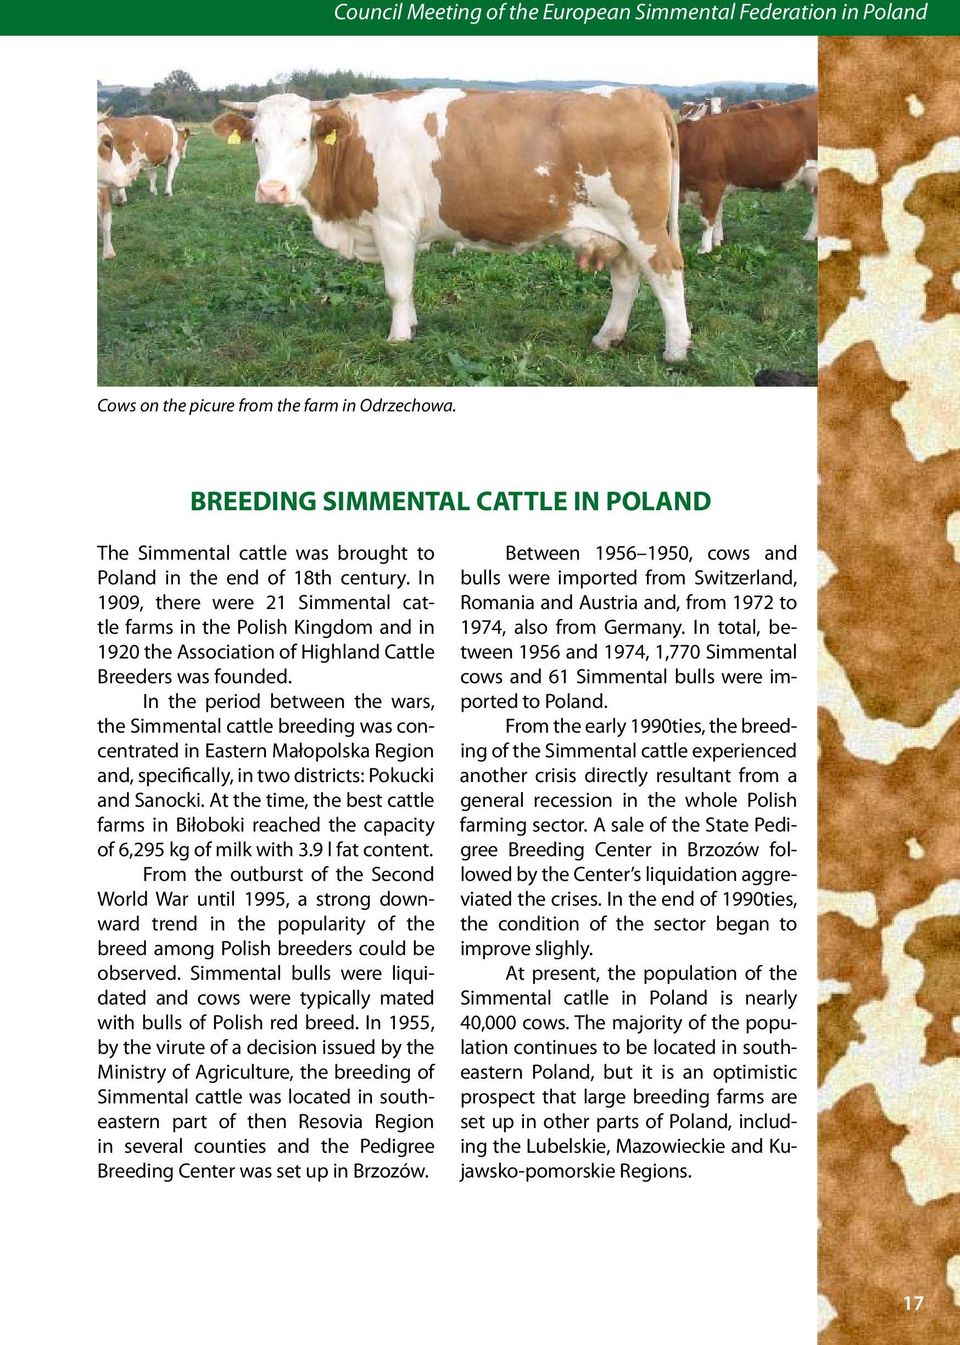 In 1909, there were 21 Simmental cattle farms in the Polish Kingdom and in 1920 the Association of Highland Cattle Breeders was founded.